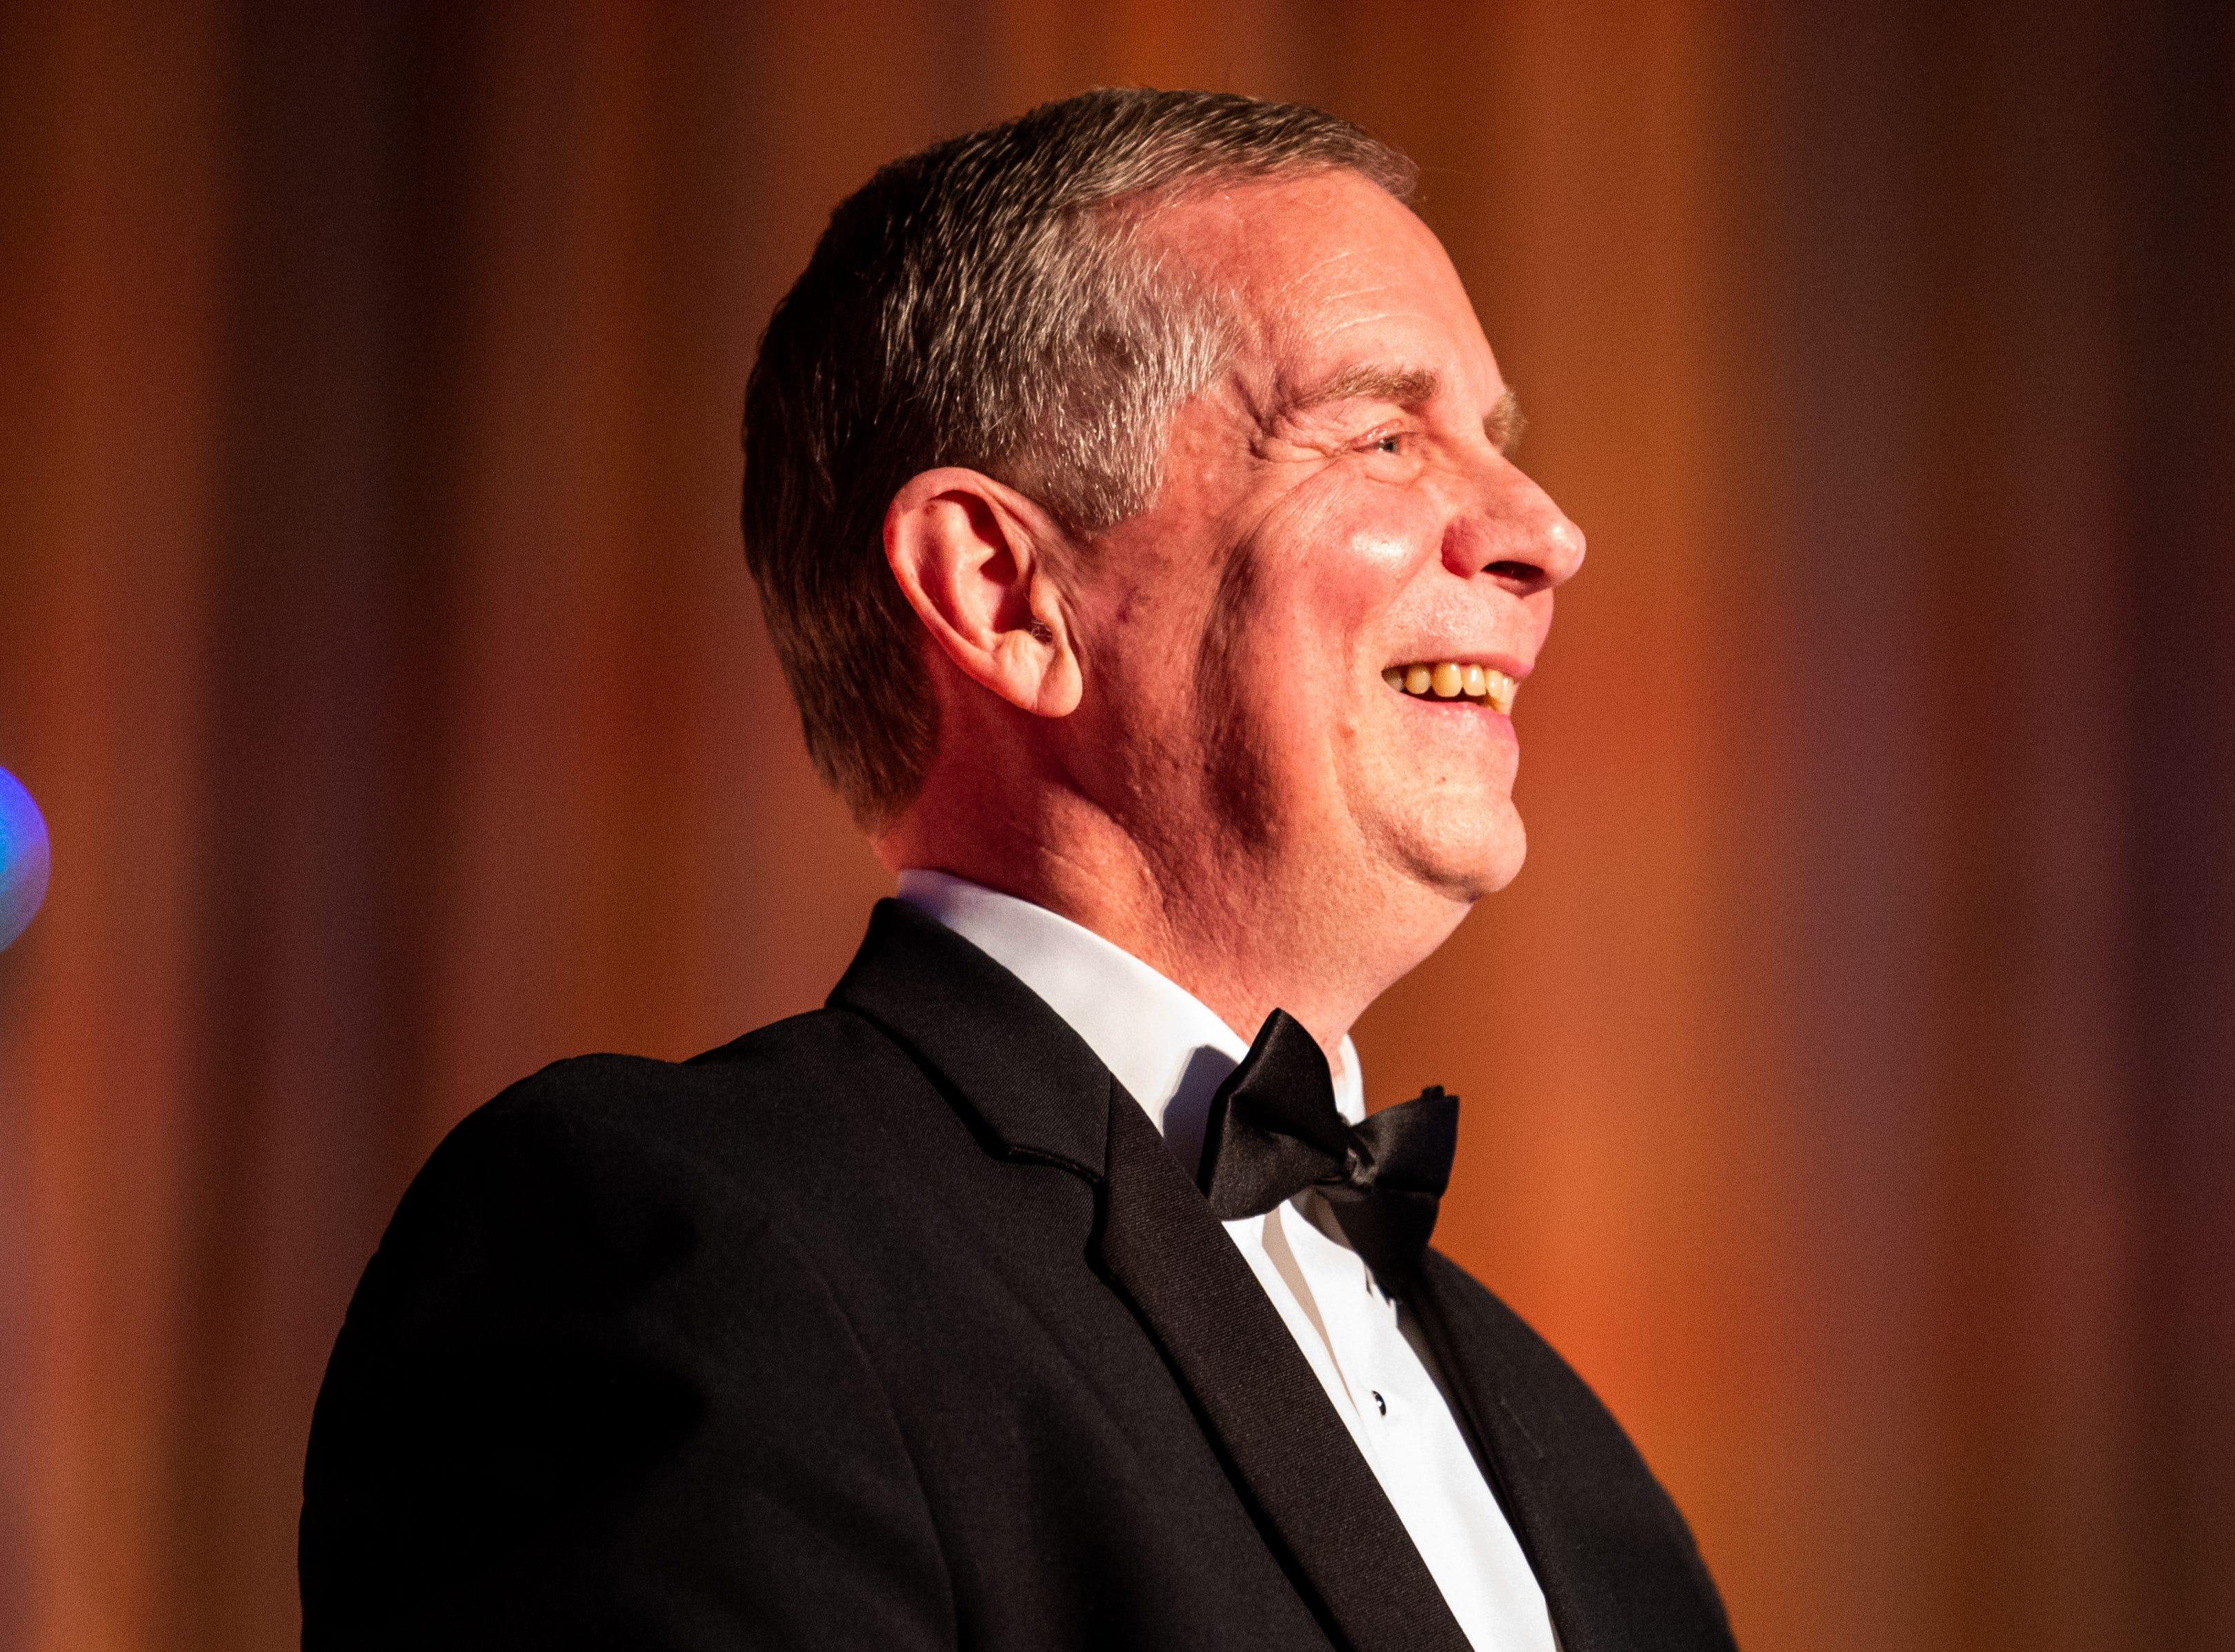 Mayor Joe Pitts smiles during Austin Peay State University's annual Candlelight Ball at the Omni Nashville Hotel Saturday, March 16, 2019, in Nashville, Tenn.